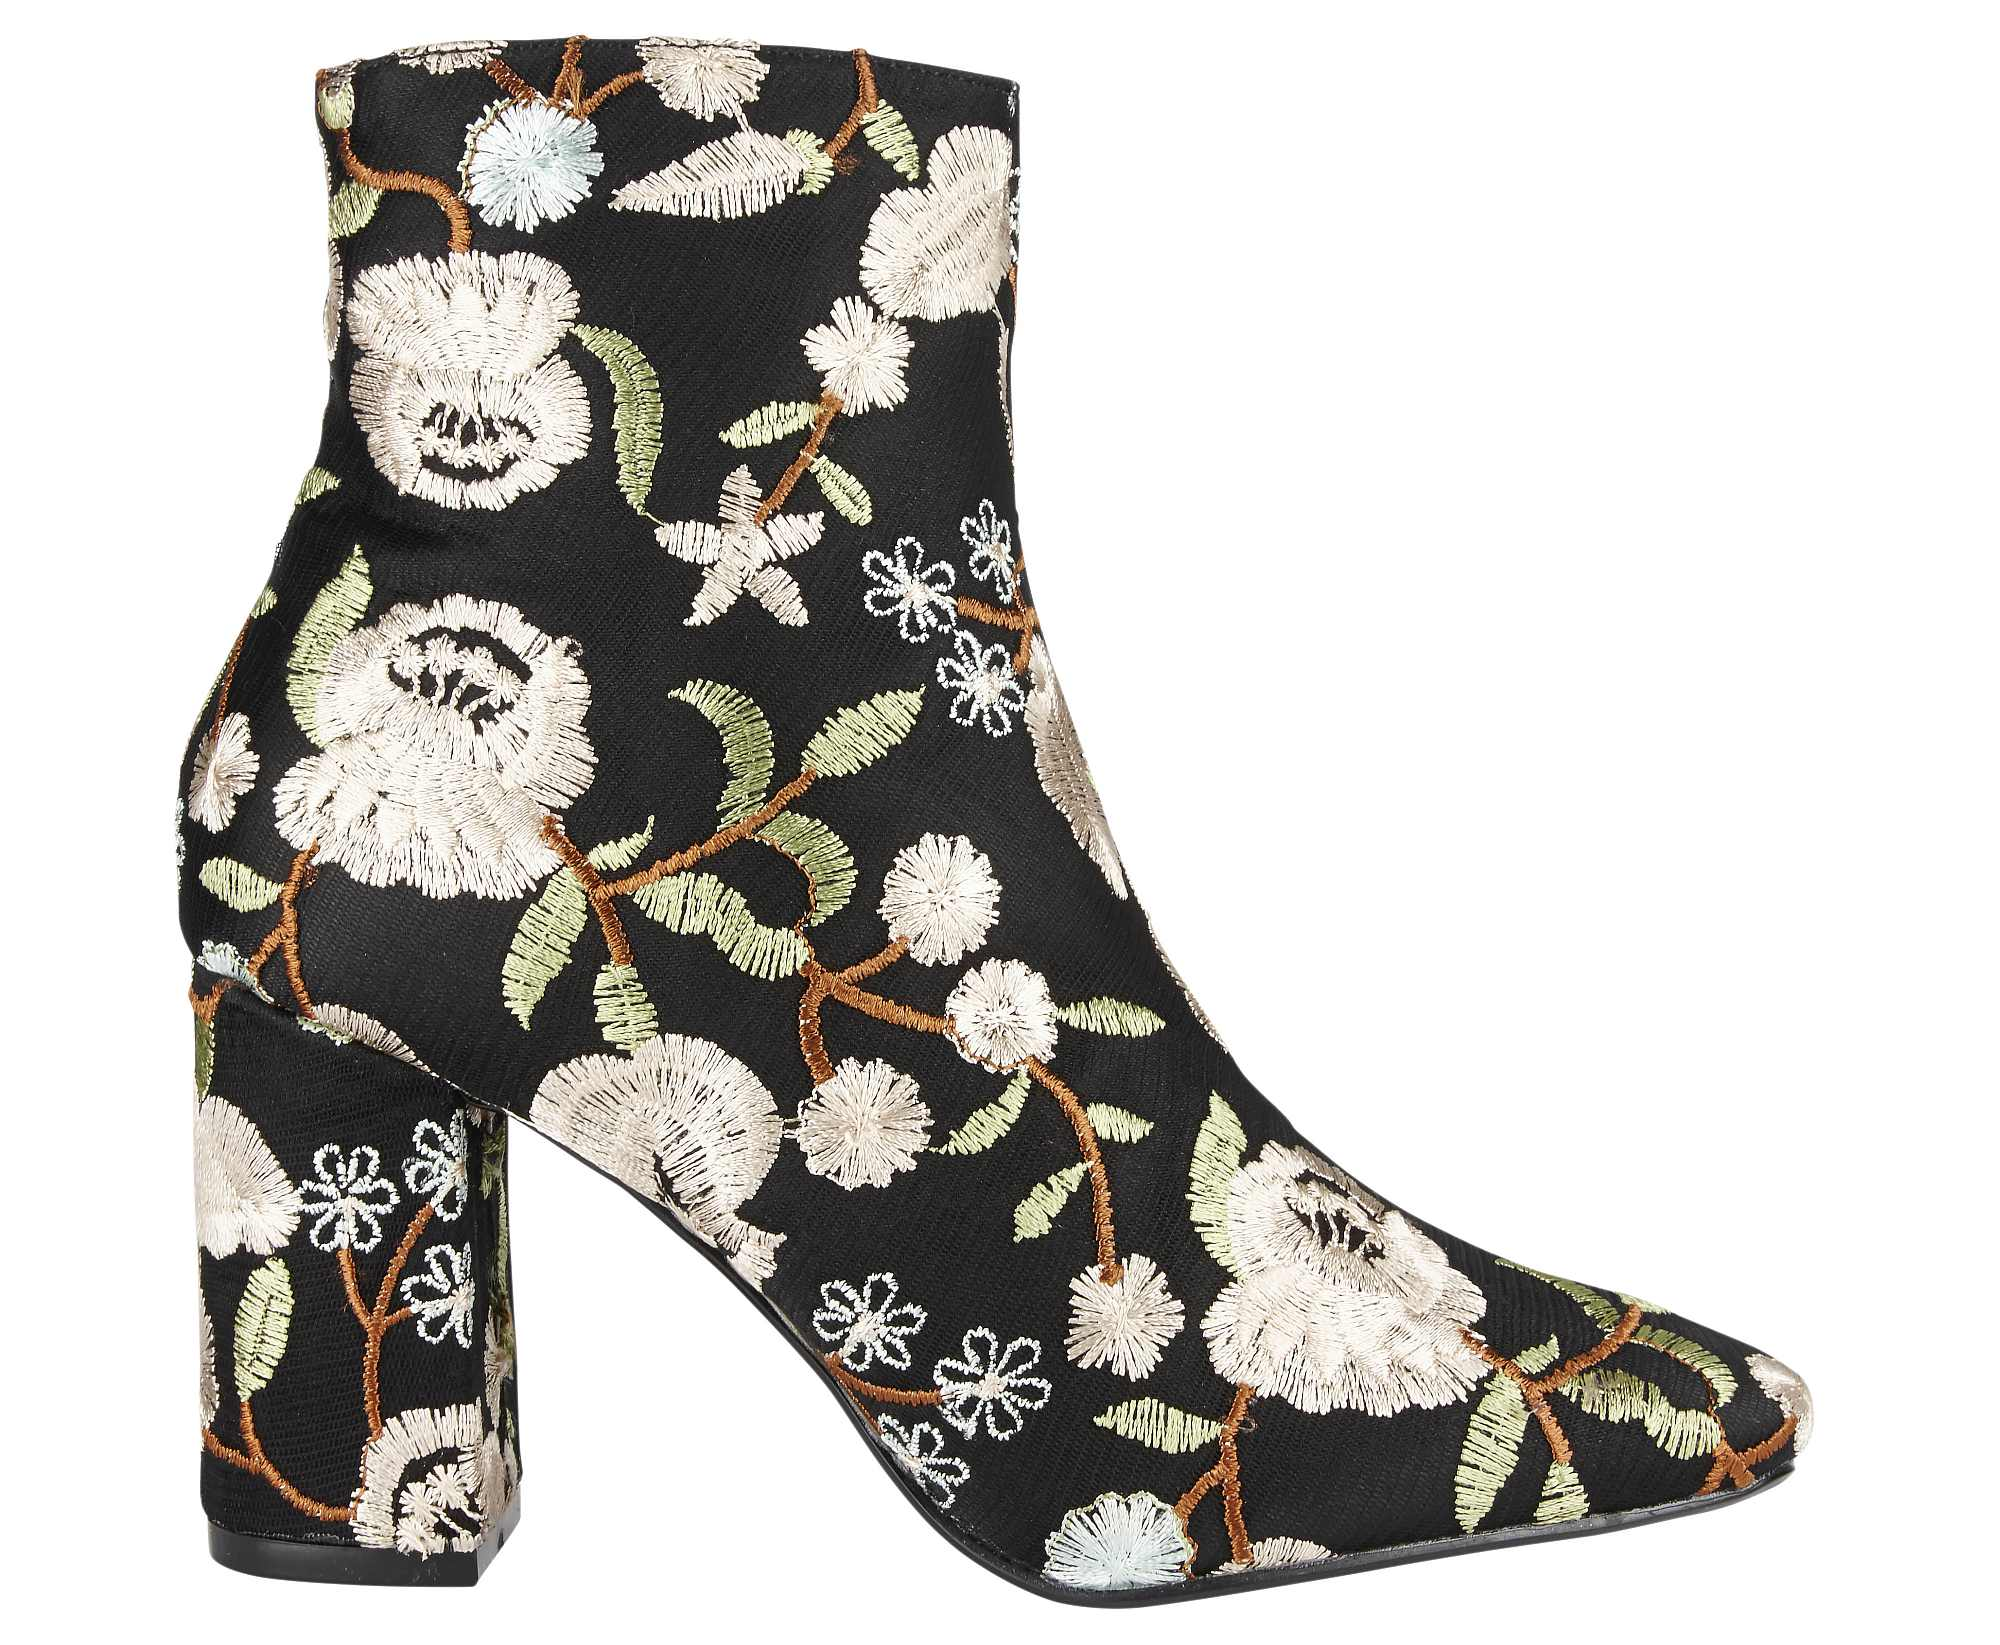 SimplyBe Sole Diva Callie Embroidered Boots